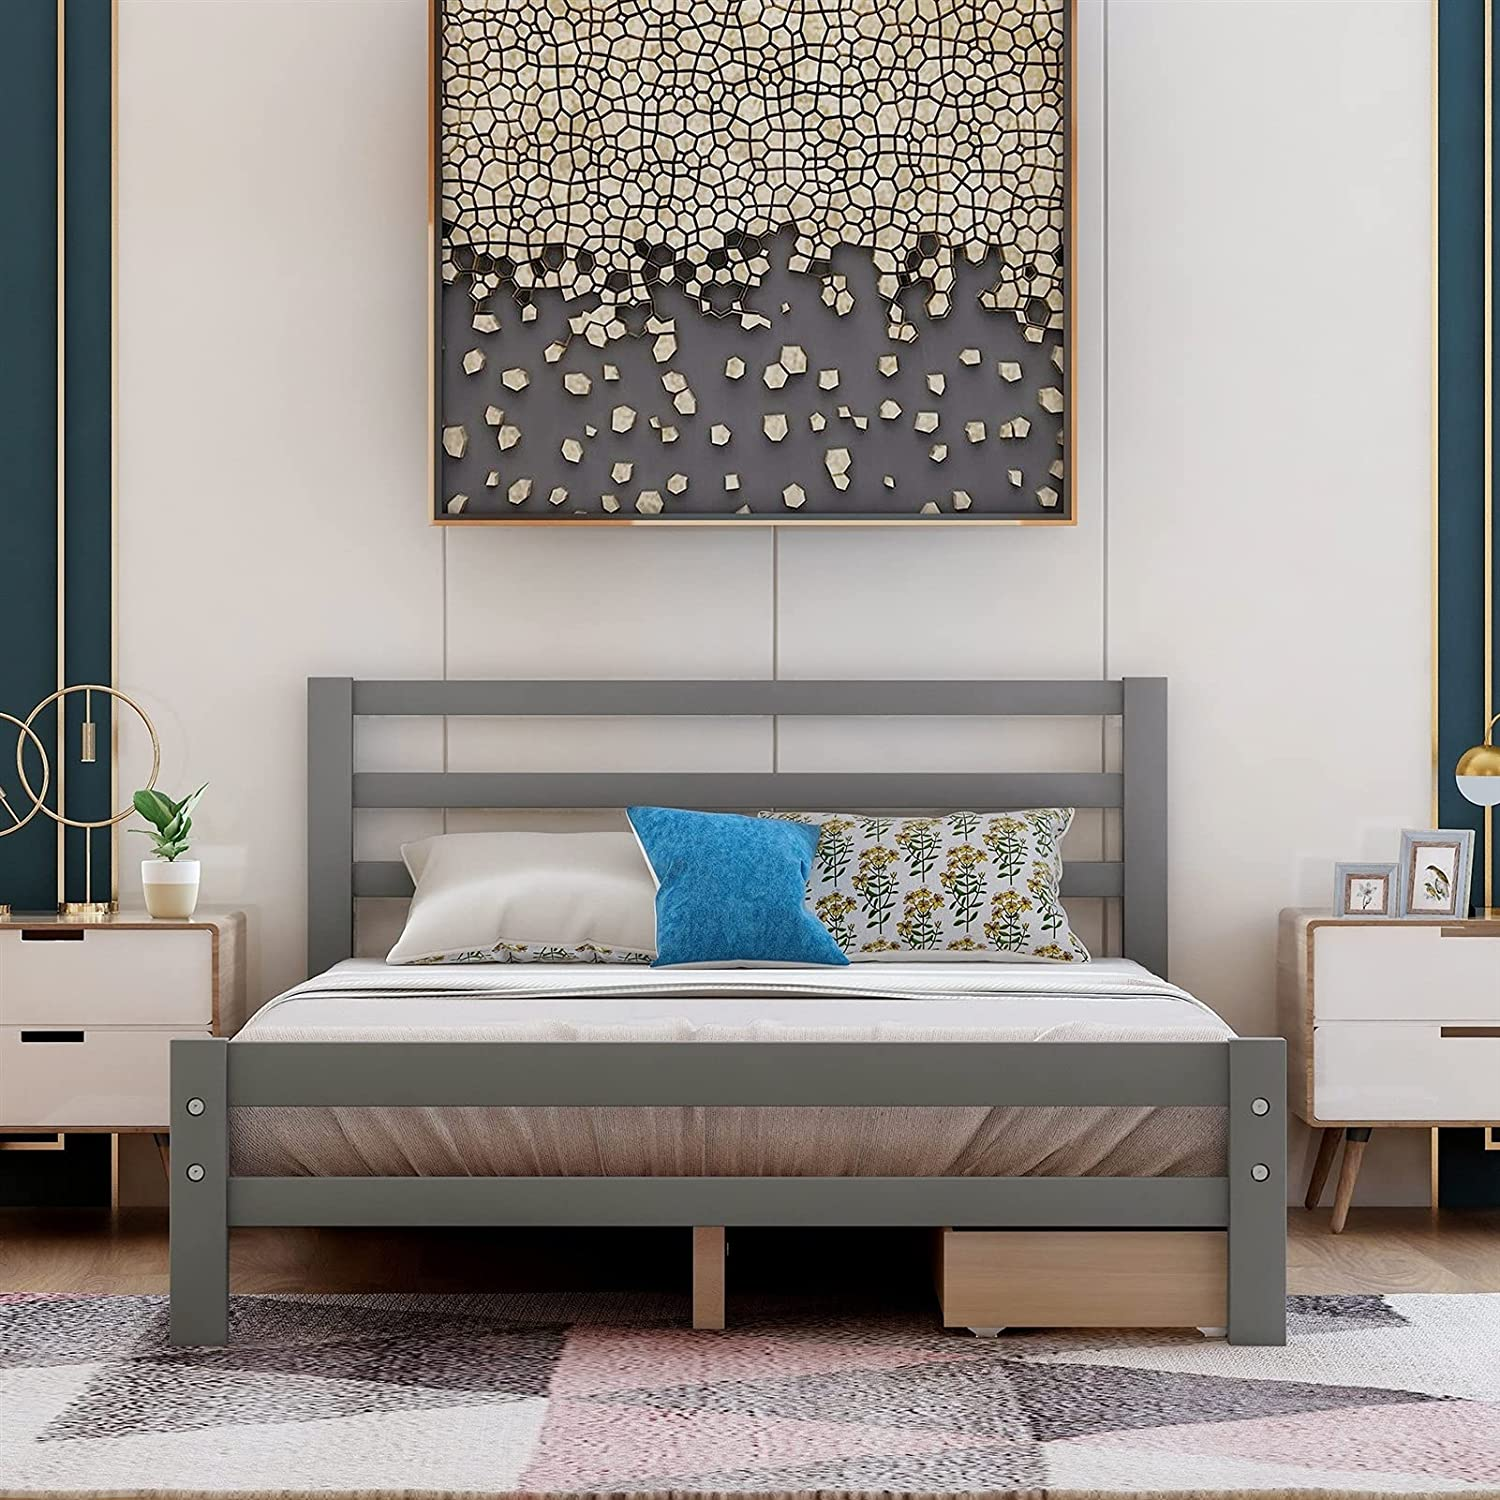 HAO KEAI Platform Jacksonville Mall Bed Frame Two Complete Free Shipping Drawe Wood with